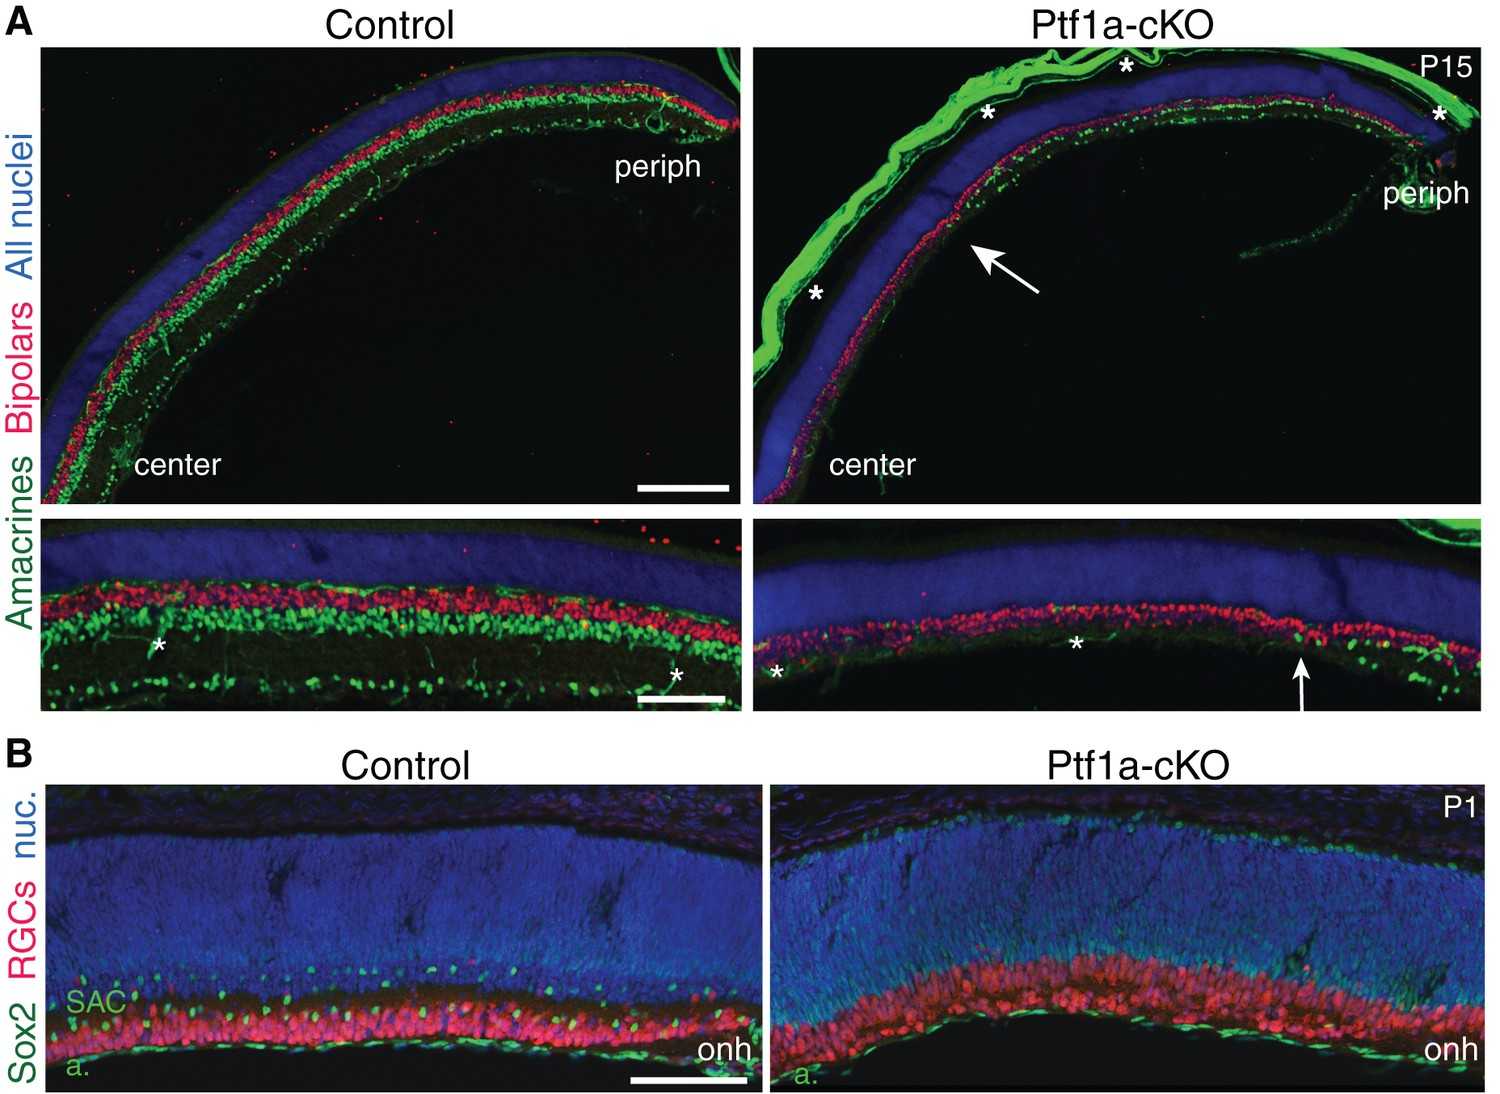 Formation Of Retinal Direction Selective Circuitry Initiated By Atb Motor Wiring Diagram Cell Types In Ptf1a Cko Mutants